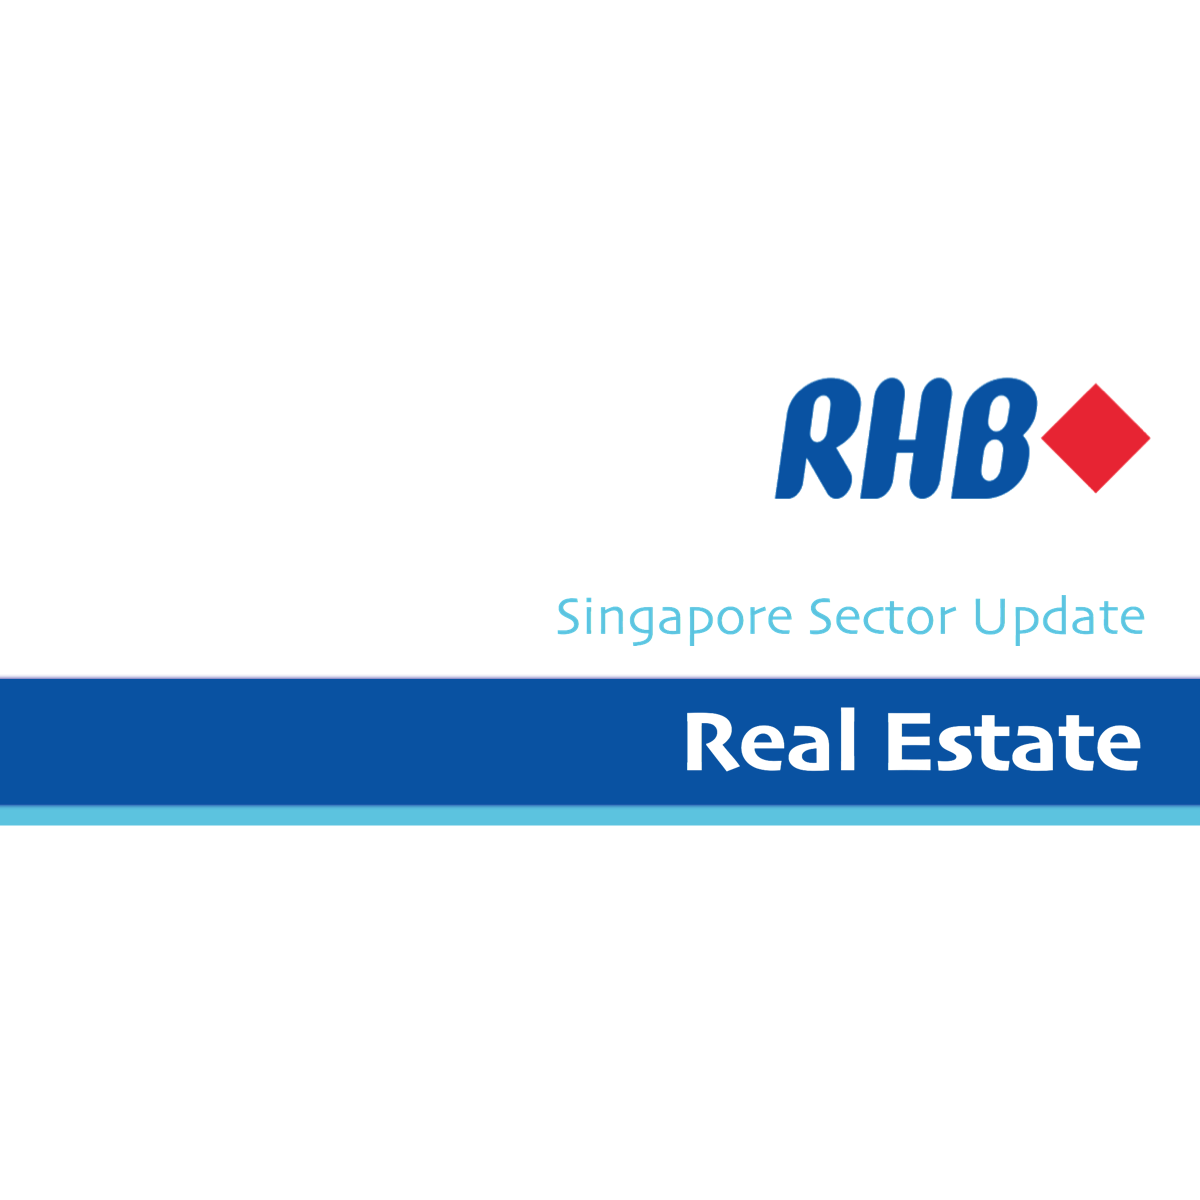 Real Estate - RHB Invest 2017-01-03: Headwinds Persist But The Bottom Is In Sight